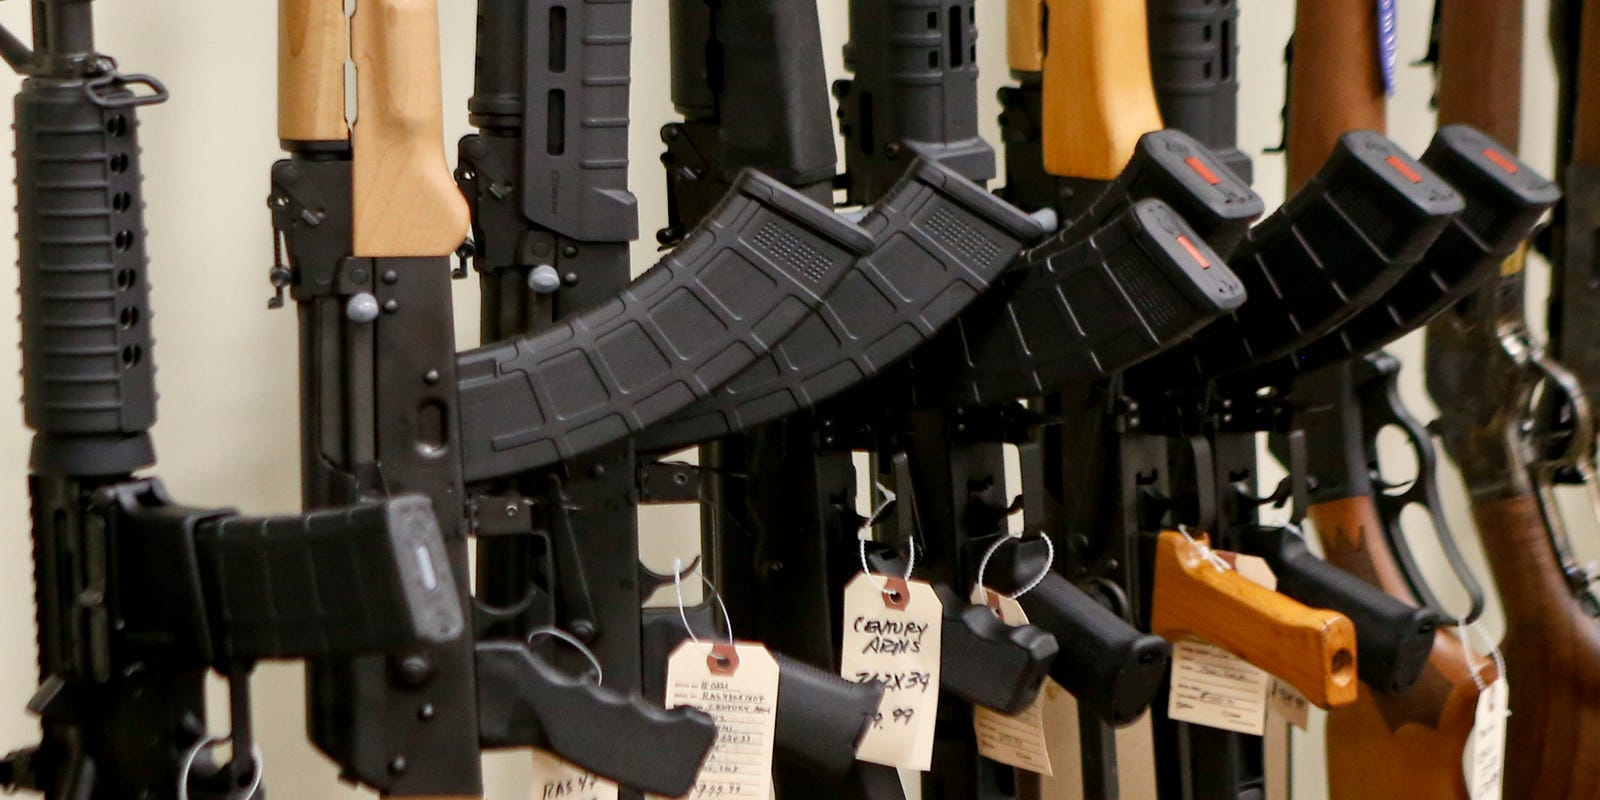 Feds seize guns from Indianapolis firearms shop after months-long investigation, DOJ says